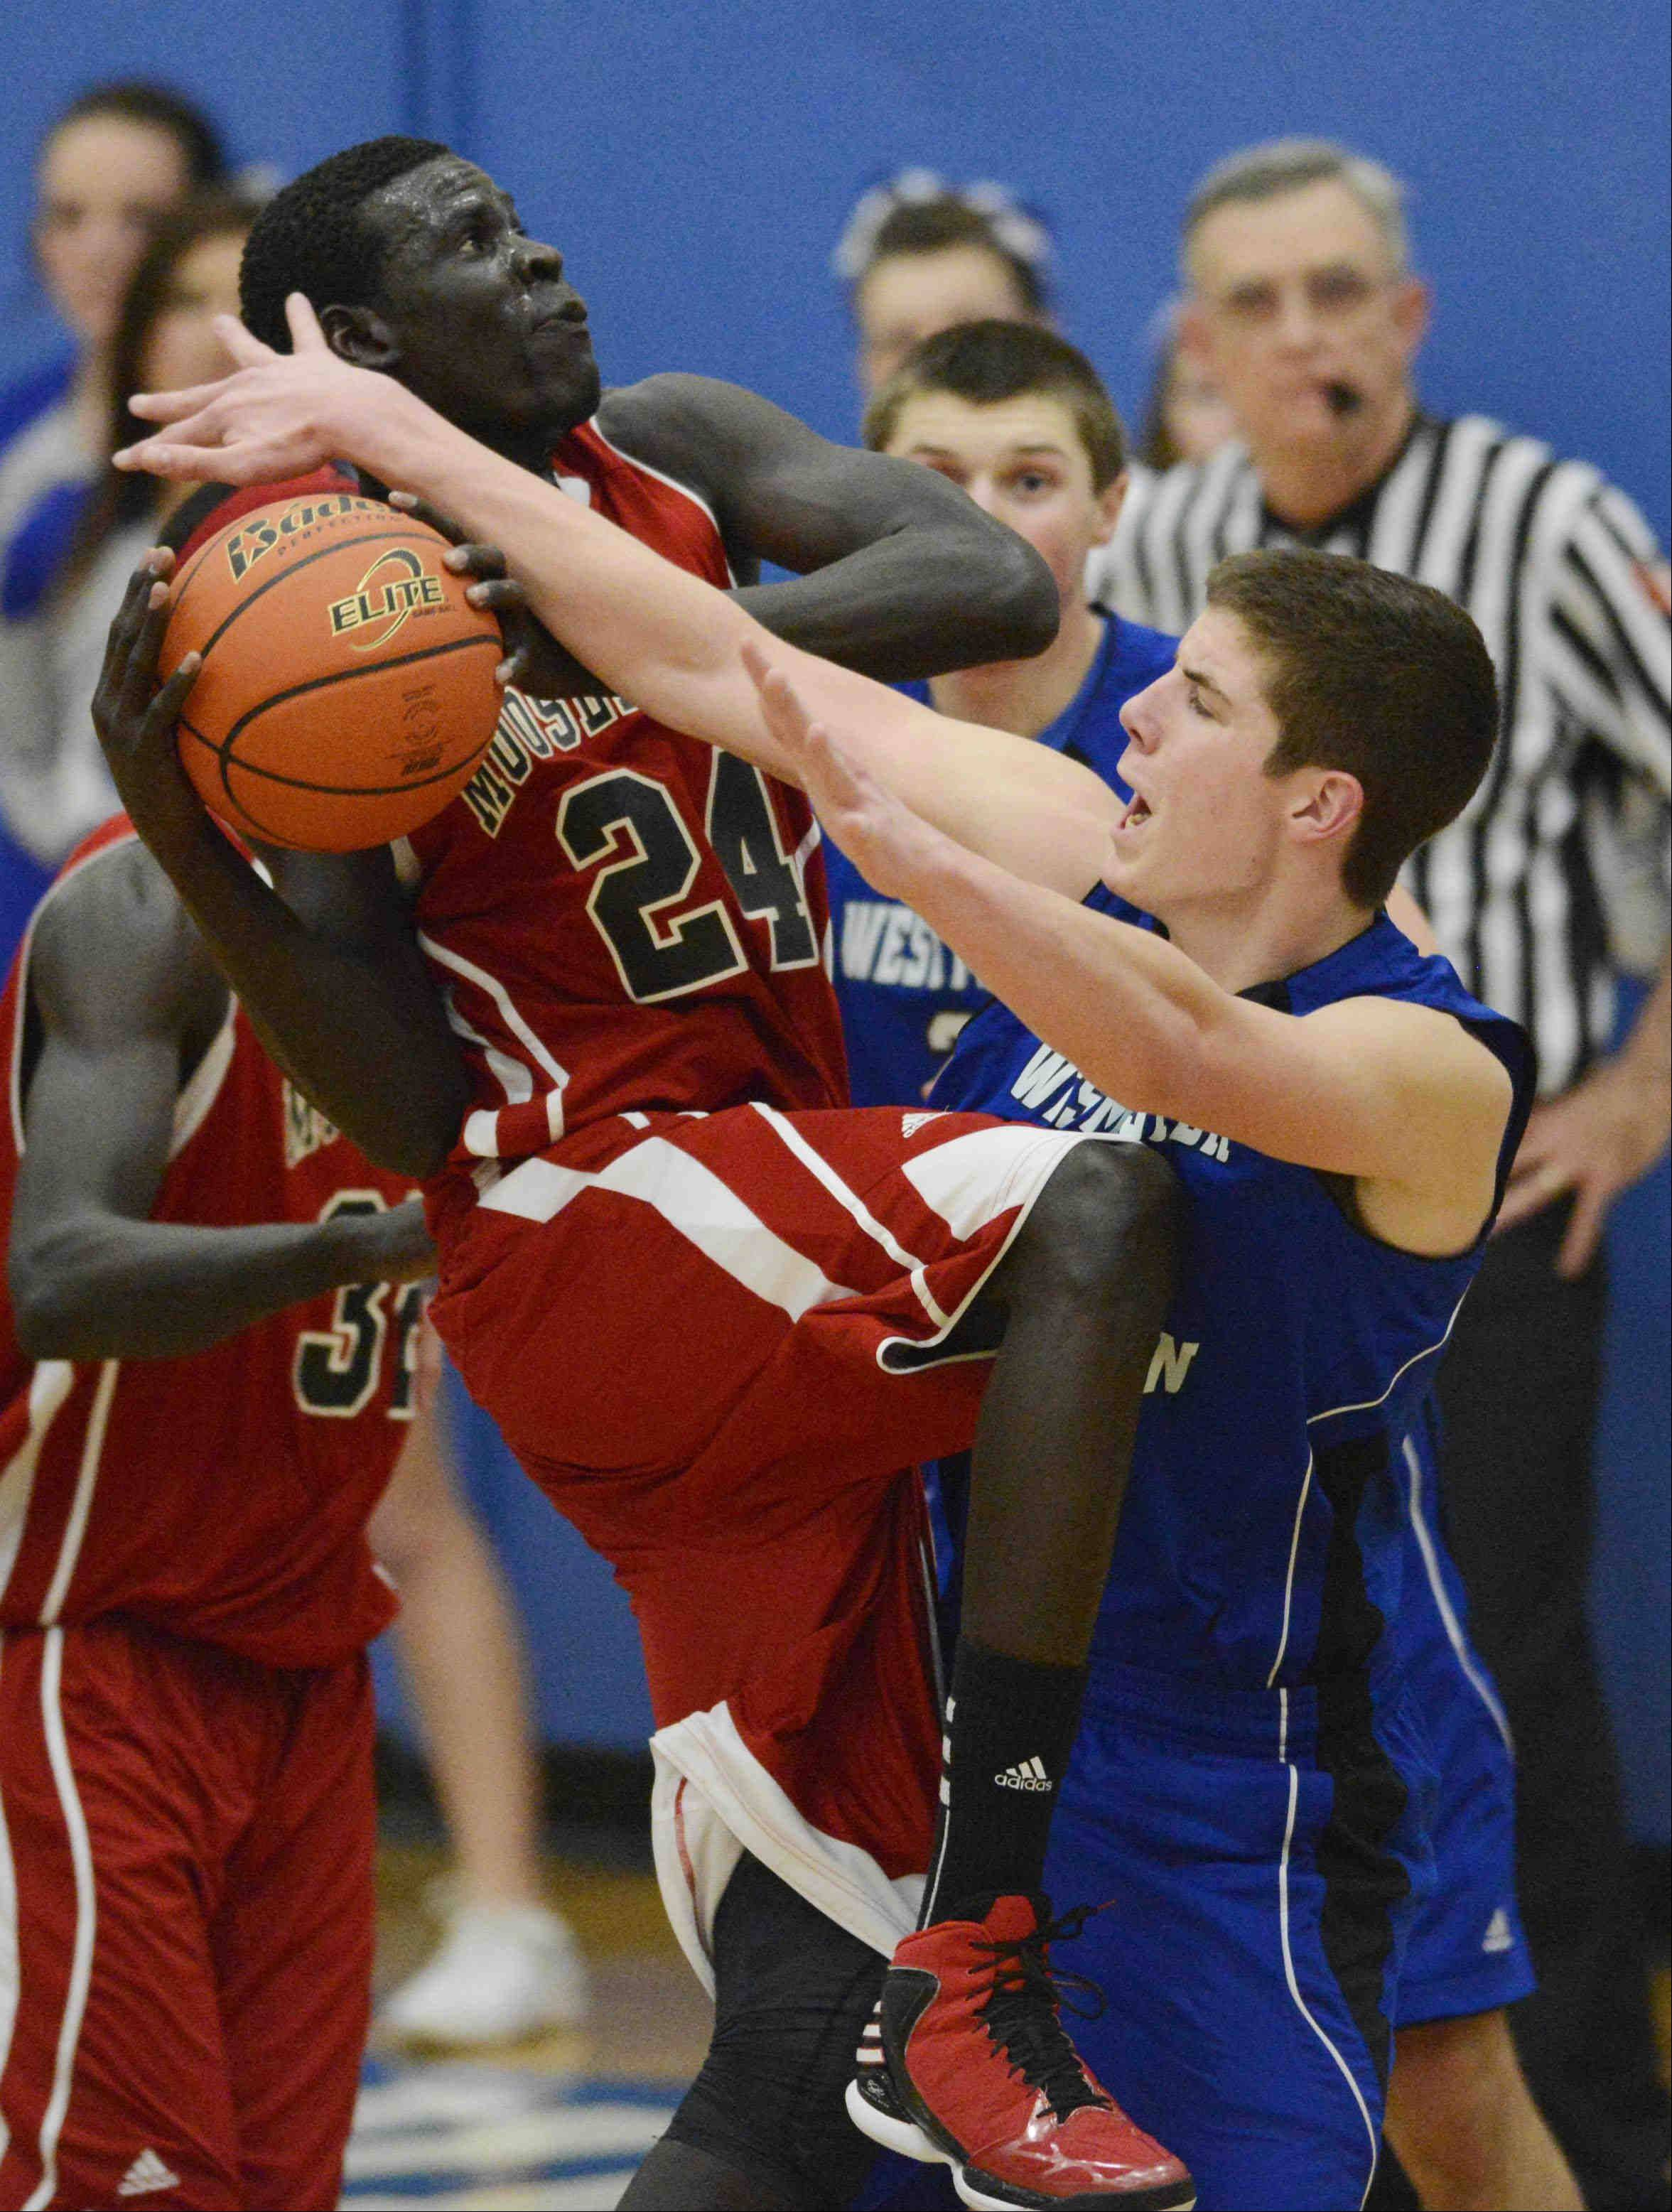 Westminster Christian's Sam Carini holds steady as Mooseheart's Mangisto Deng drives. Traveling was called against Deng.